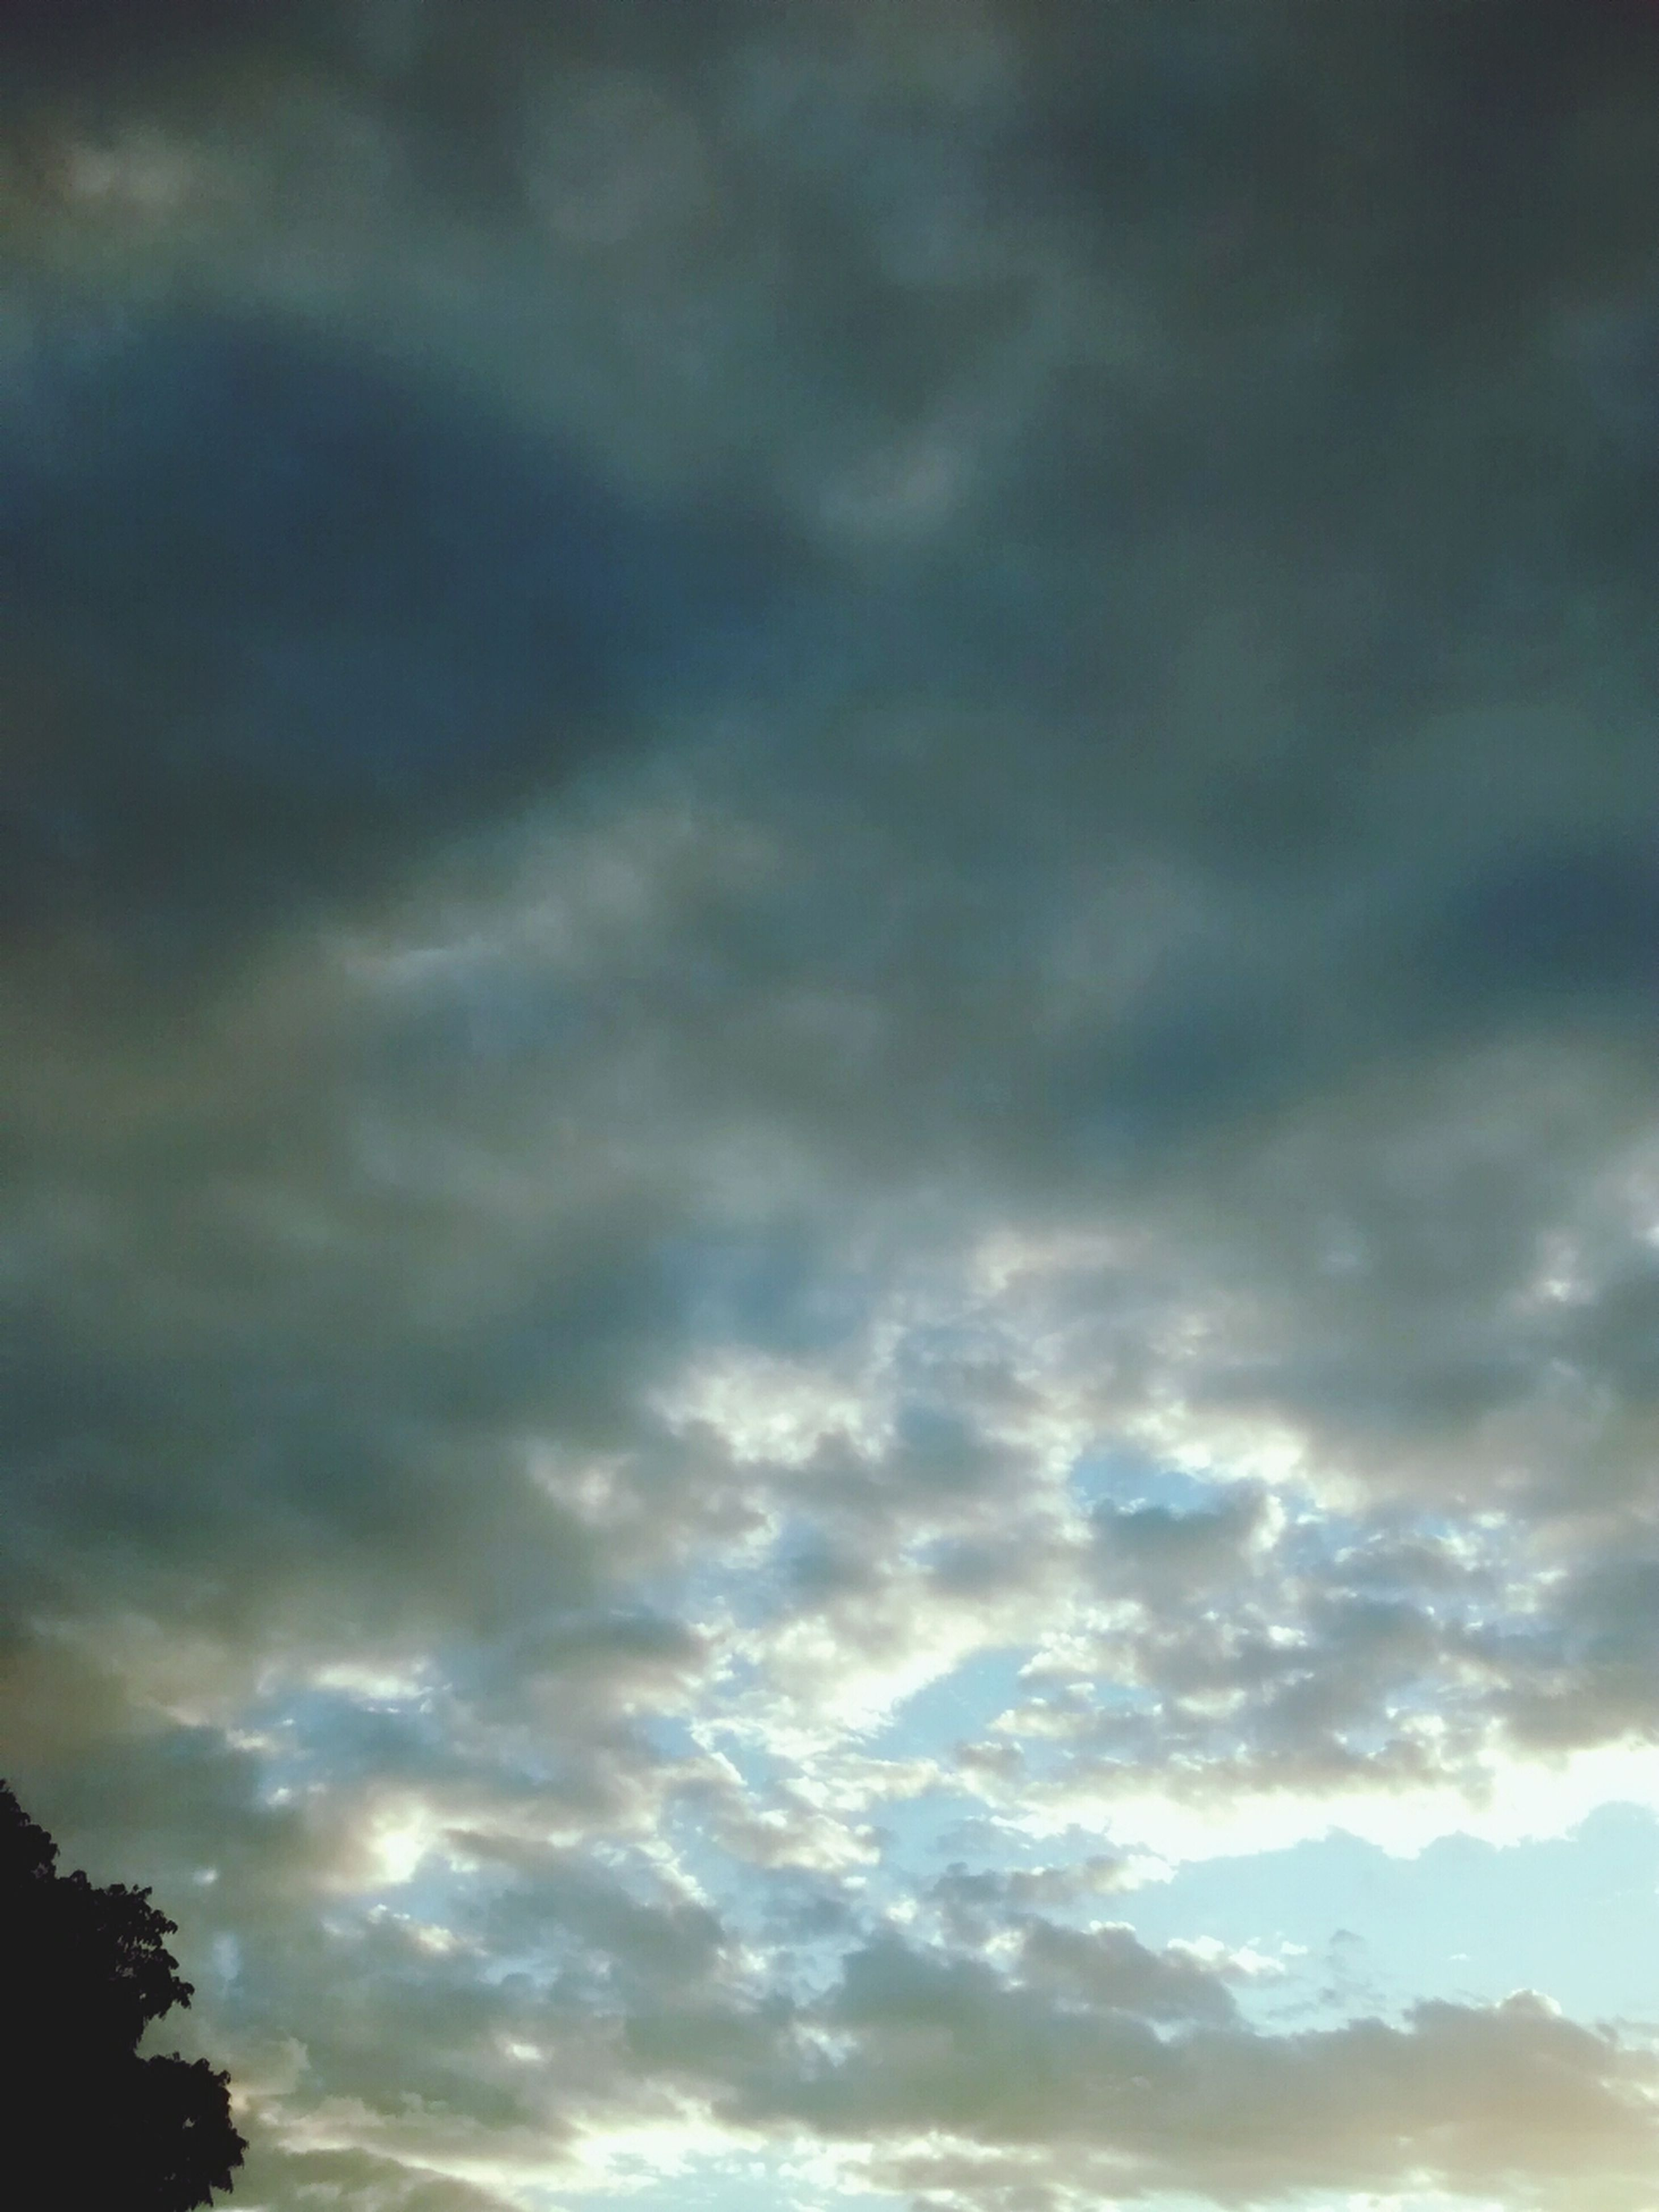 sky, cloud - sky, cloudy, low angle view, beauty in nature, tranquility, scenics, weather, overcast, tranquil scene, cloudscape, nature, cloud, dramatic sky, sunset, silhouette, storm cloud, idyllic, dusk, outdoors